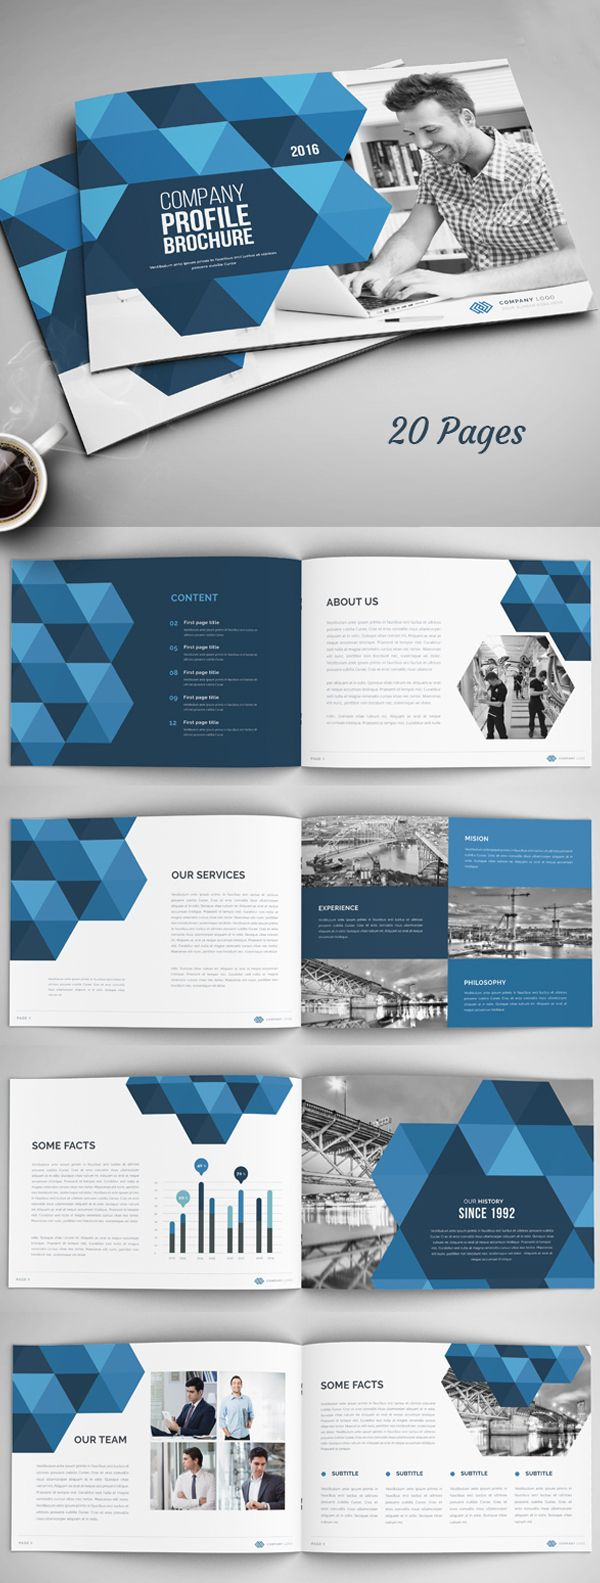 20 pages annual report company profile brochure template more